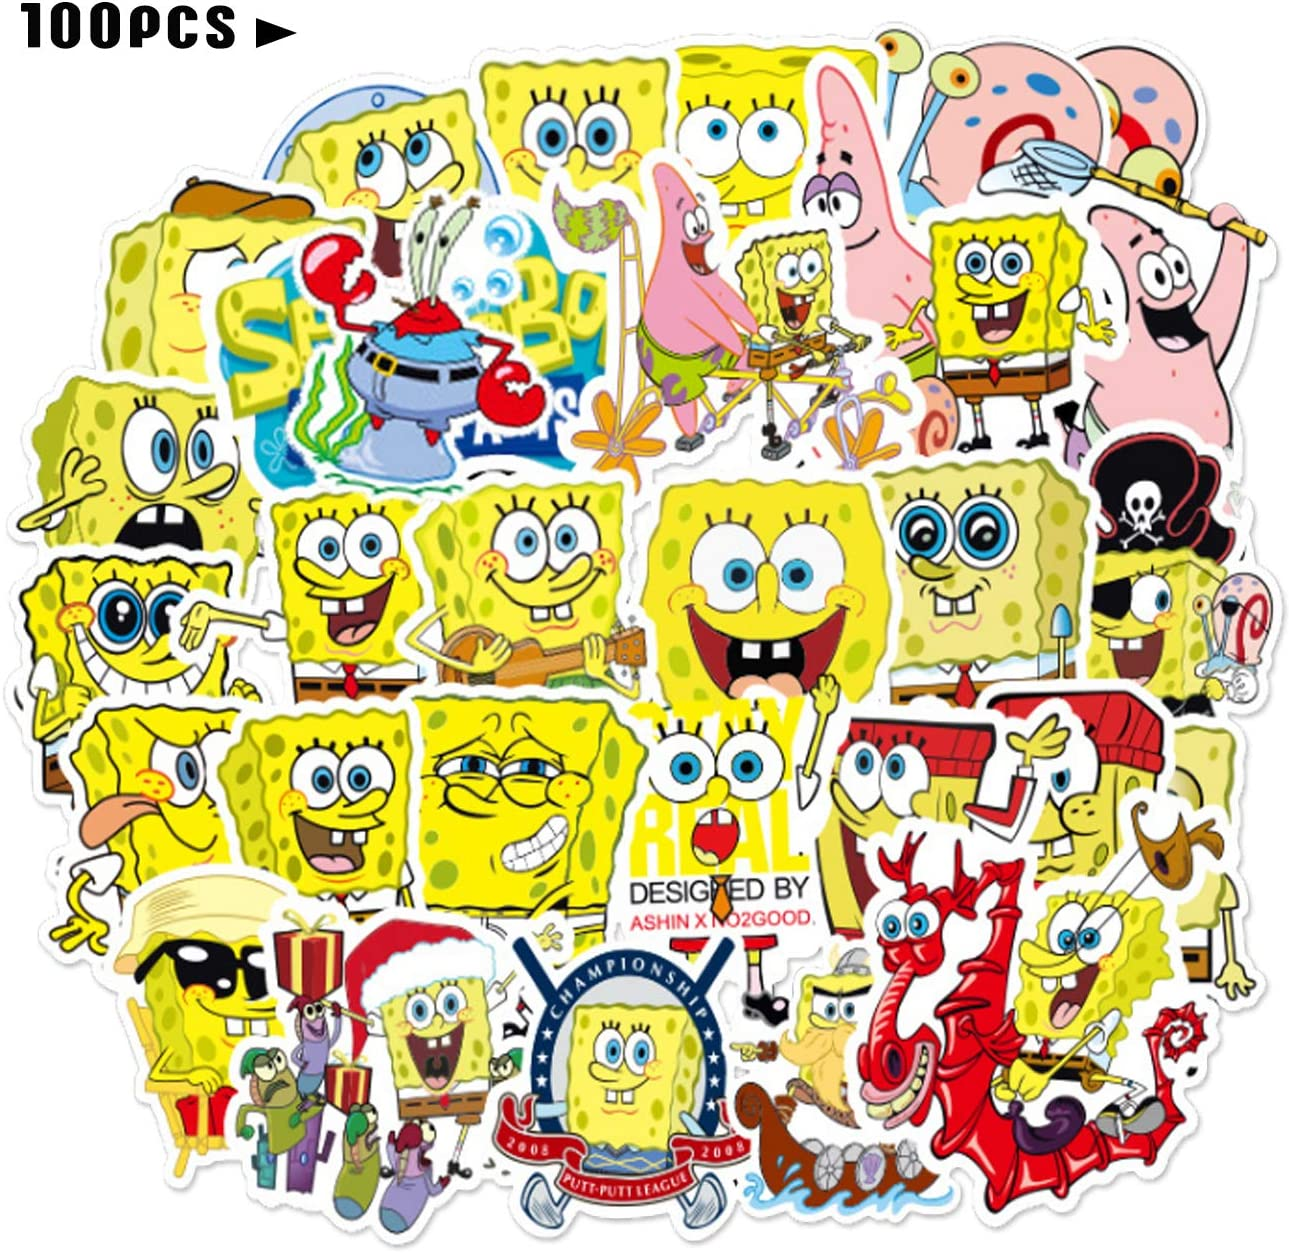 100pcs Spongebo_b Stickers Cartoon Meme Vinyl Water Bottle Skateboard Guitar Stickers Waterproof for Kids Teens Adults Luggage Laptop Decal Stickers